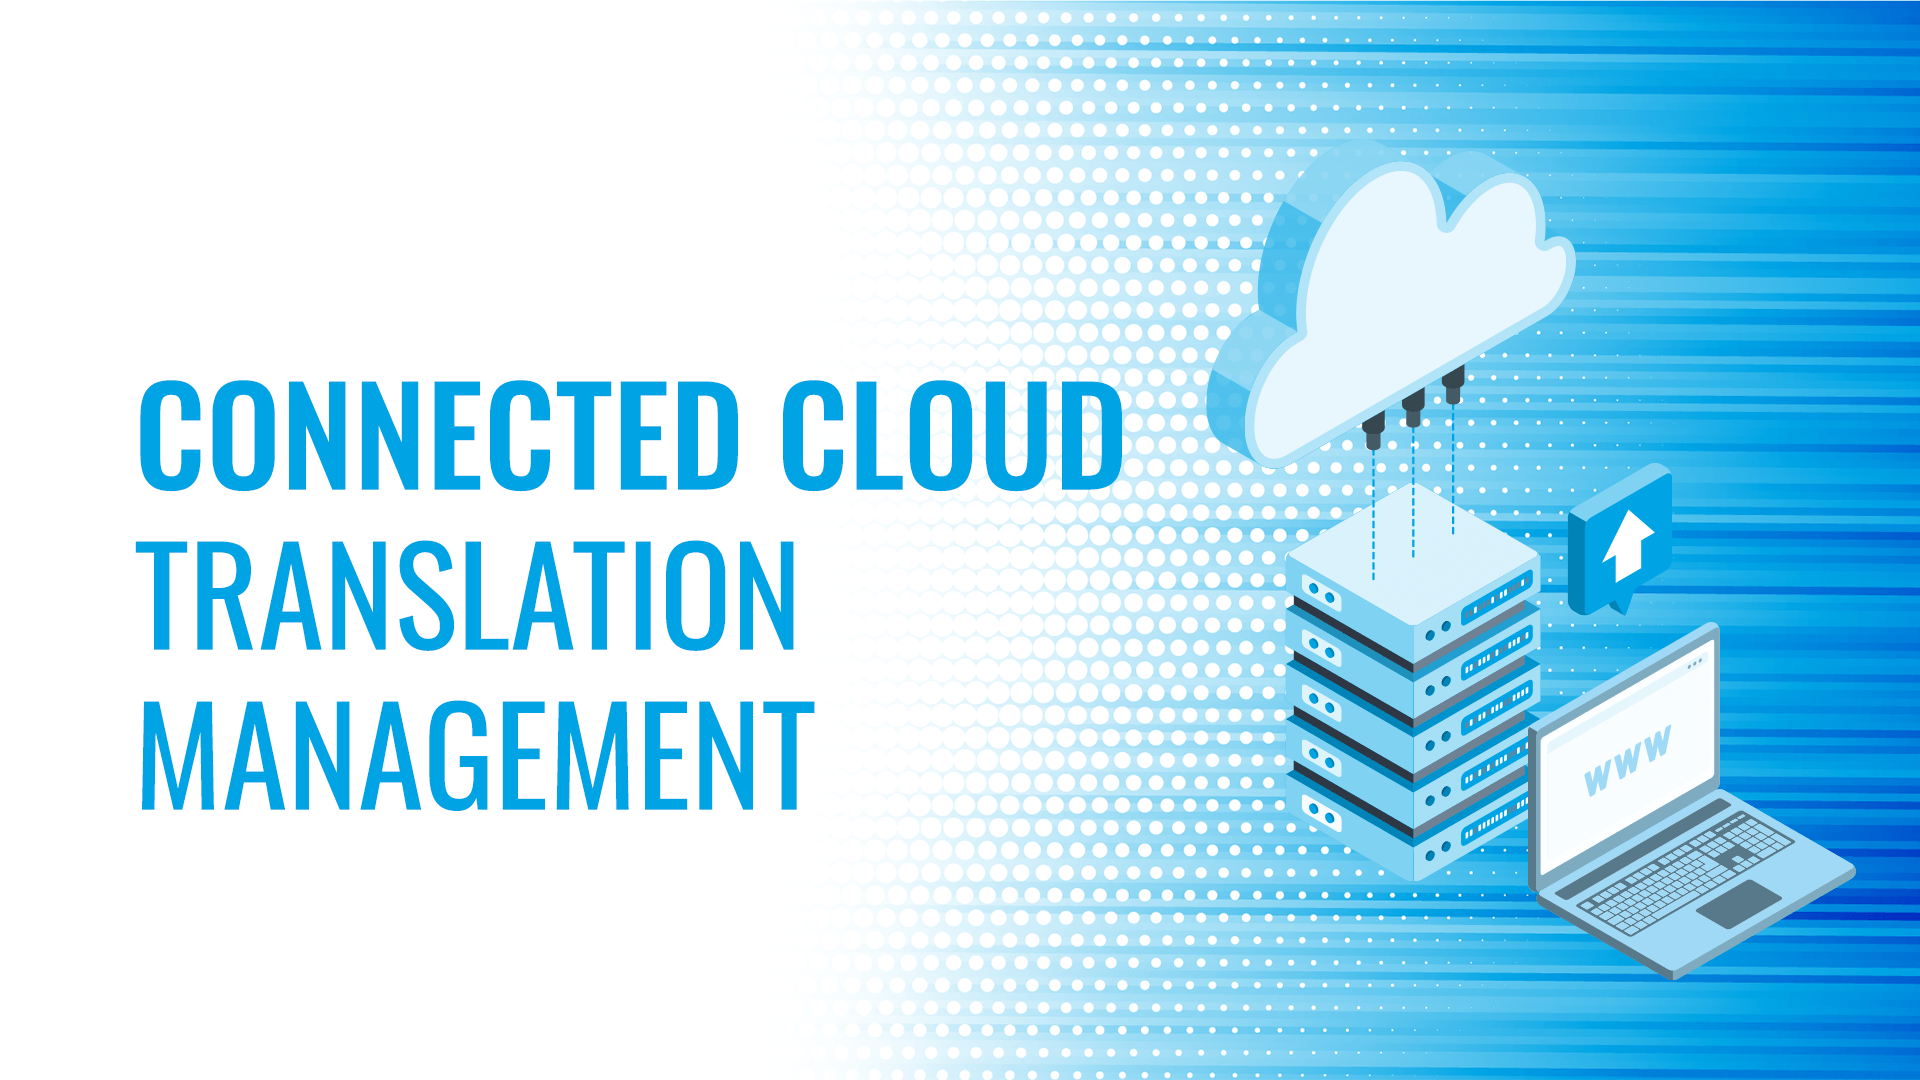 XTM Connect – Connected cloud translation management